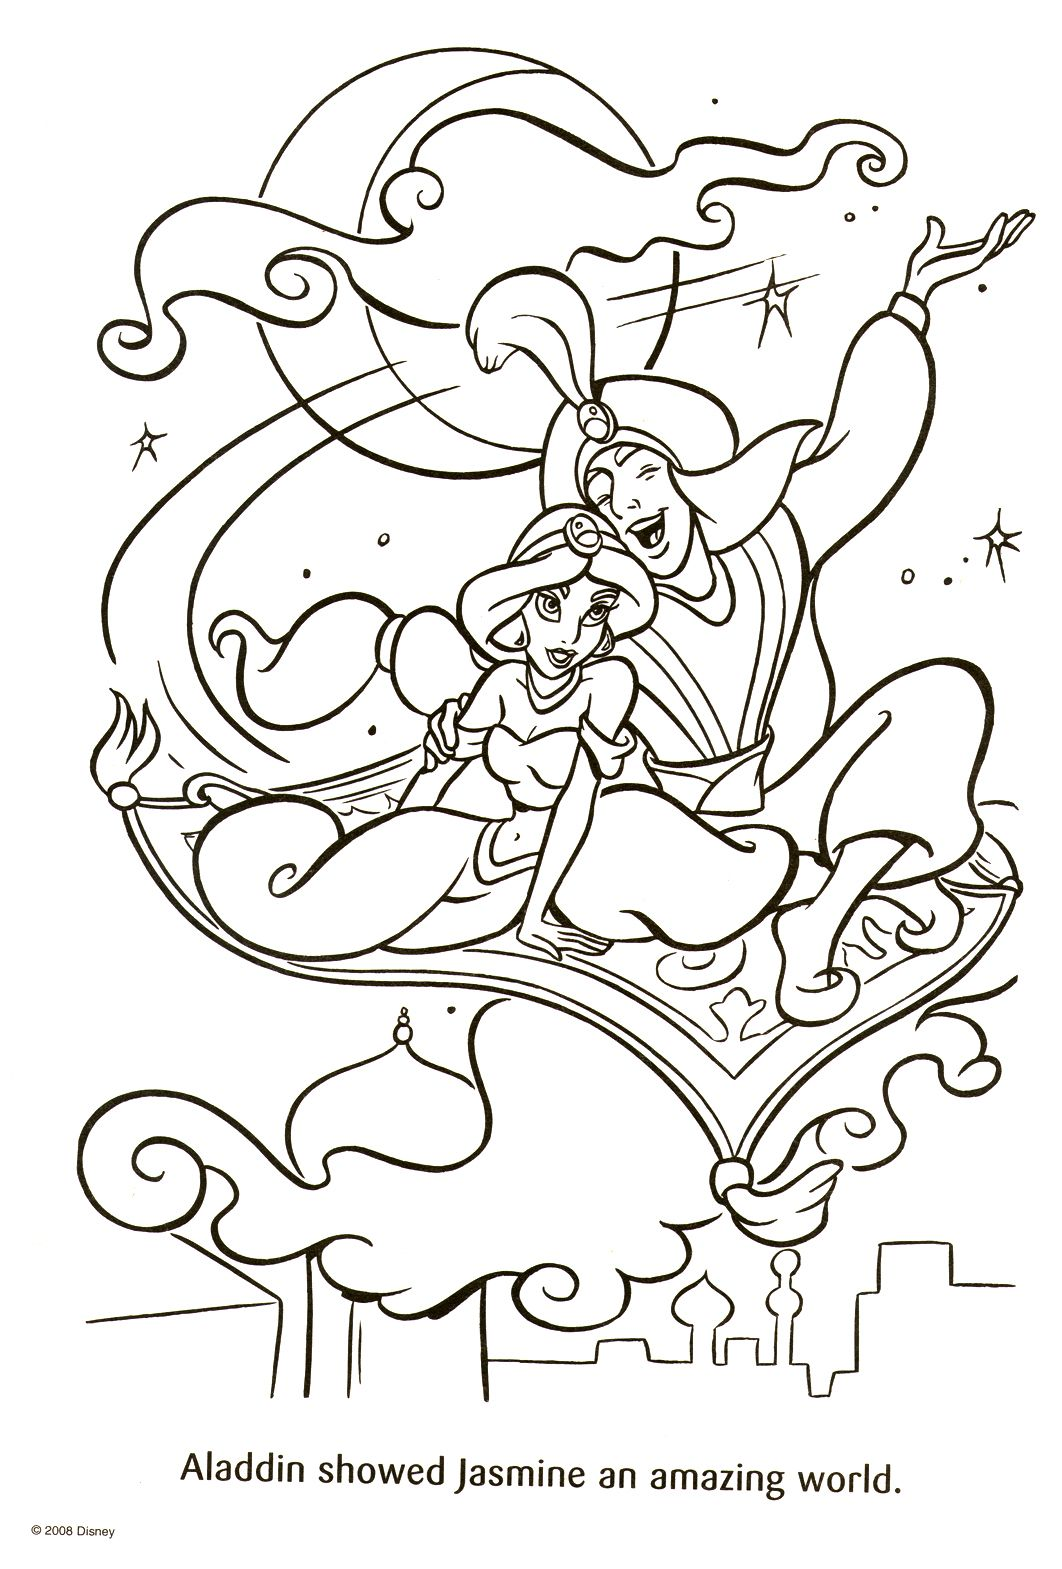 Disney Coloring Pages Aladdin And Jasmine Riding A Flying Carpet